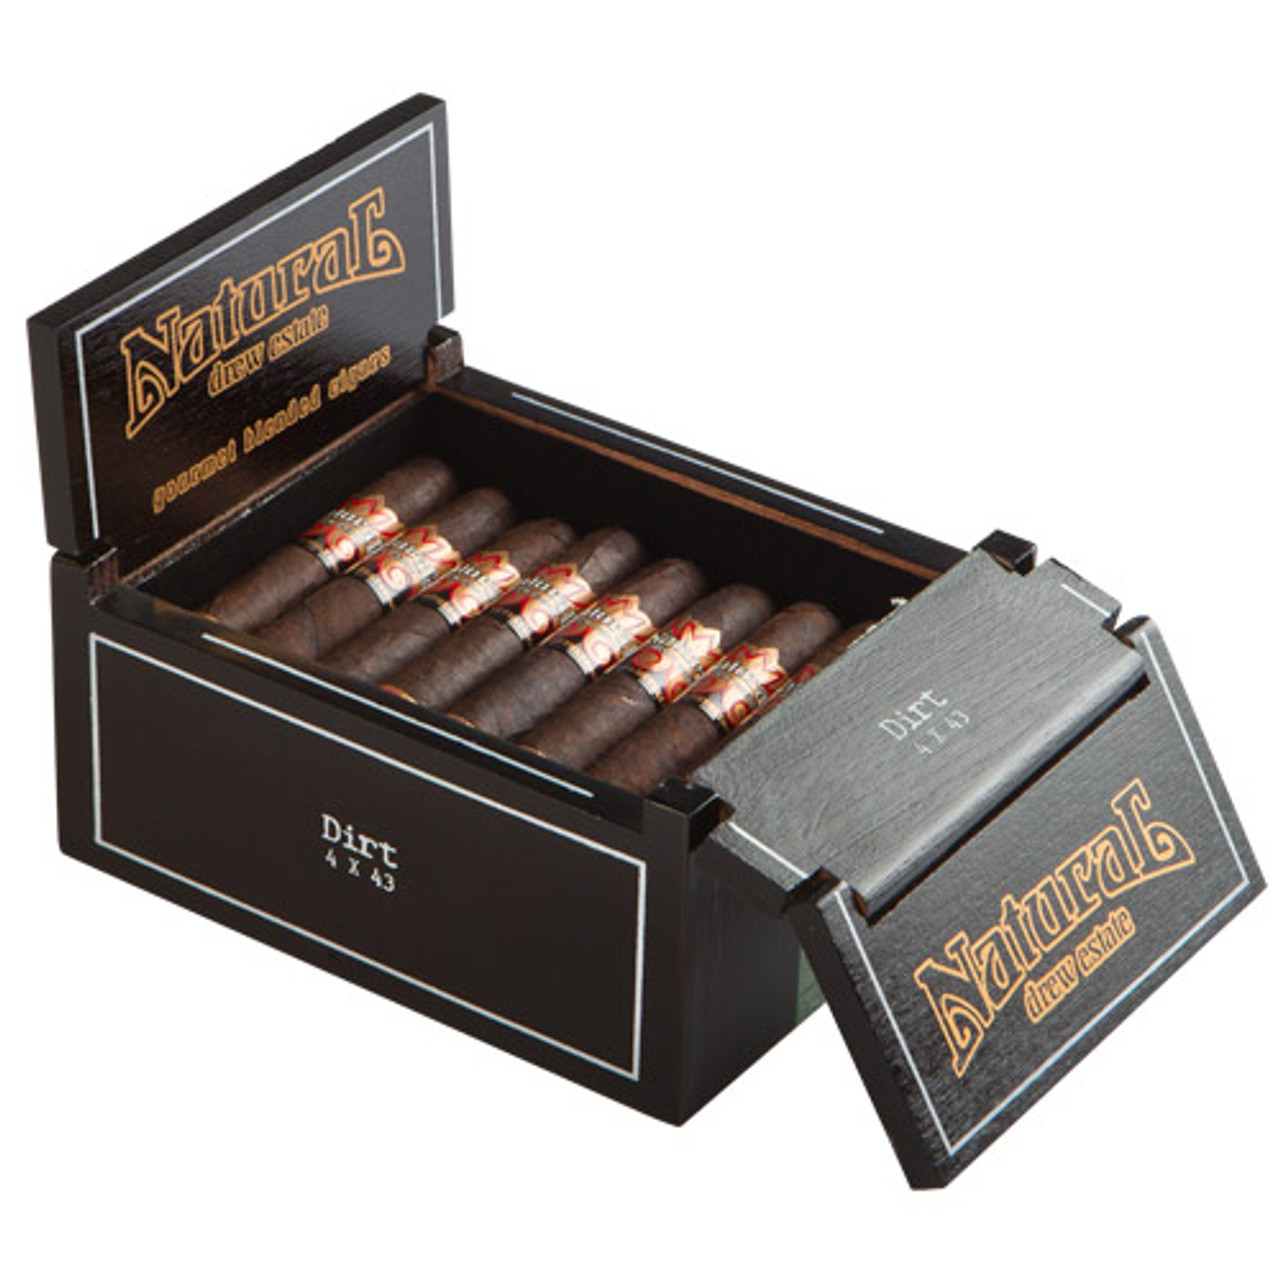 Drew Estate Natural Clean Robusto Cigars - 5 x 50 (Box of 24)